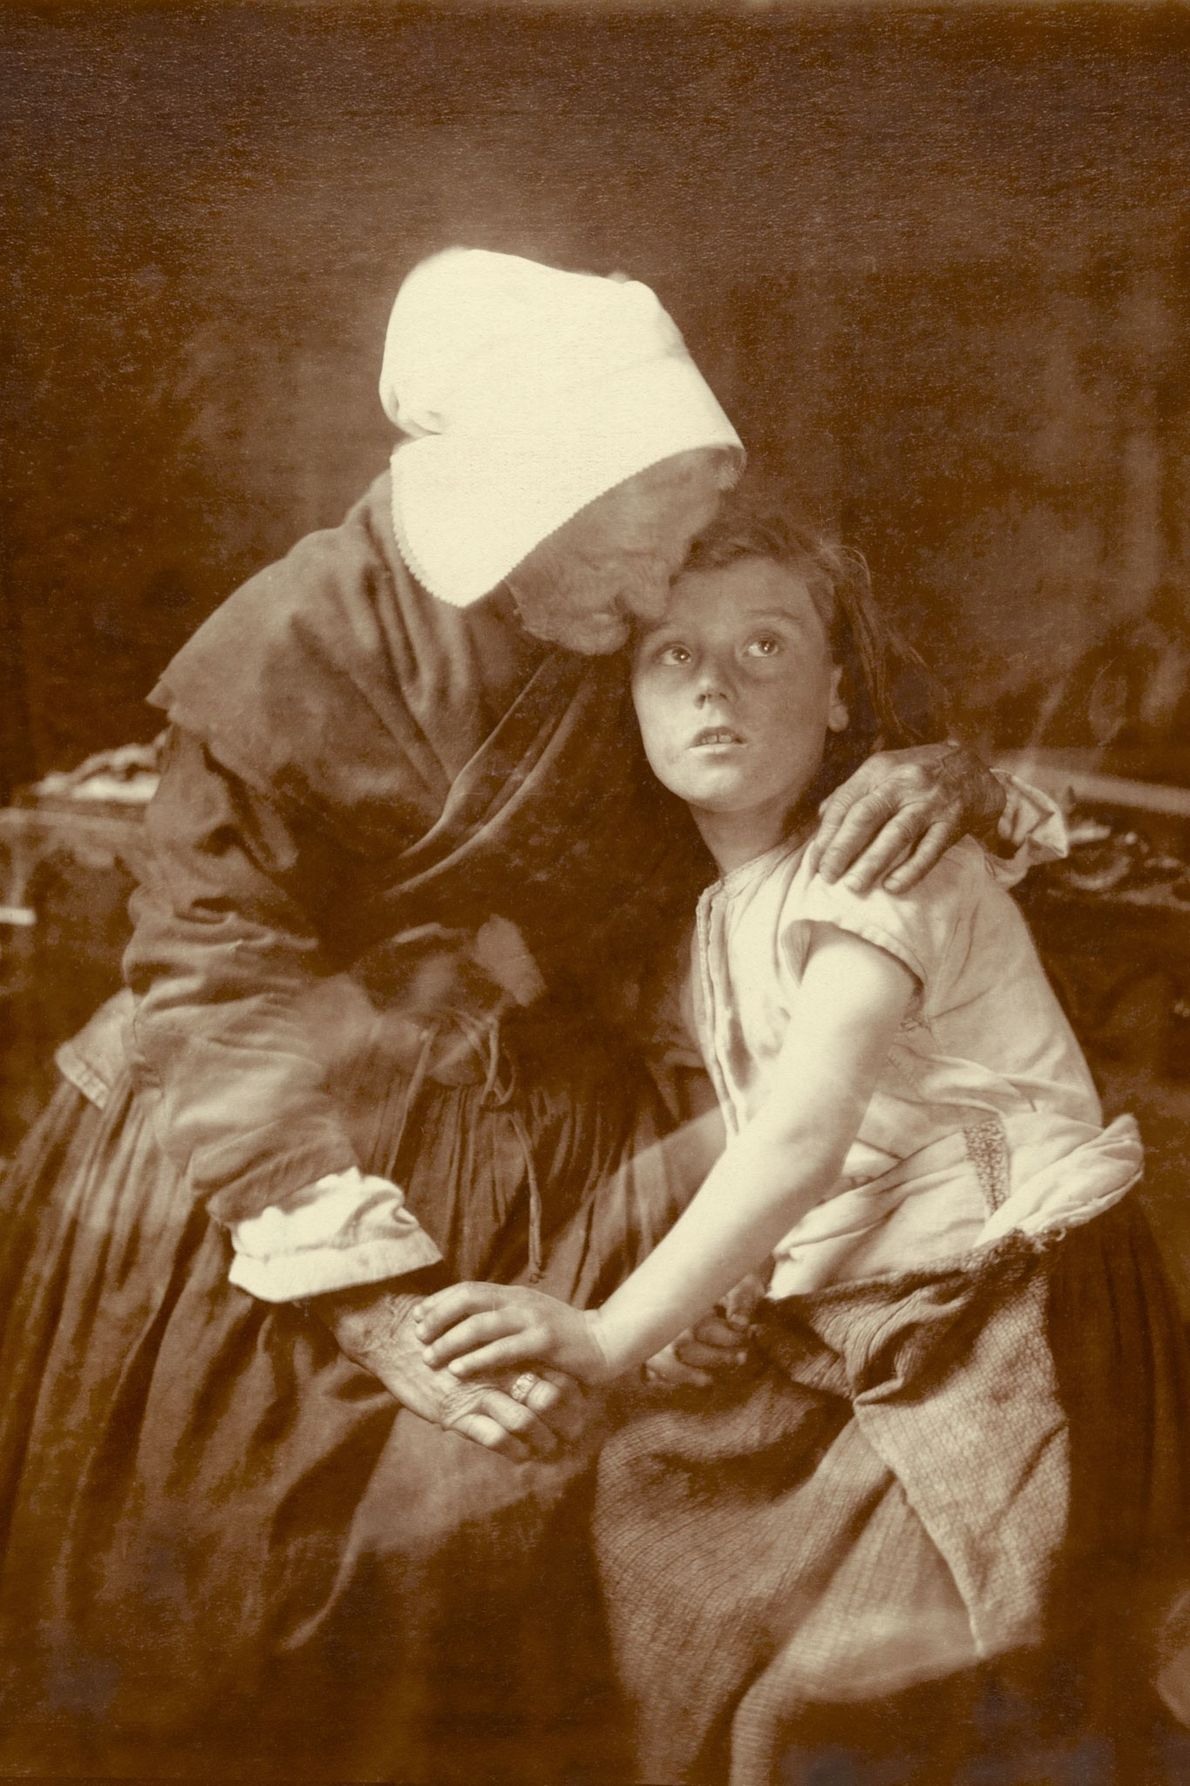 An elderly Flemish grandmother in Belgium hugs a child.